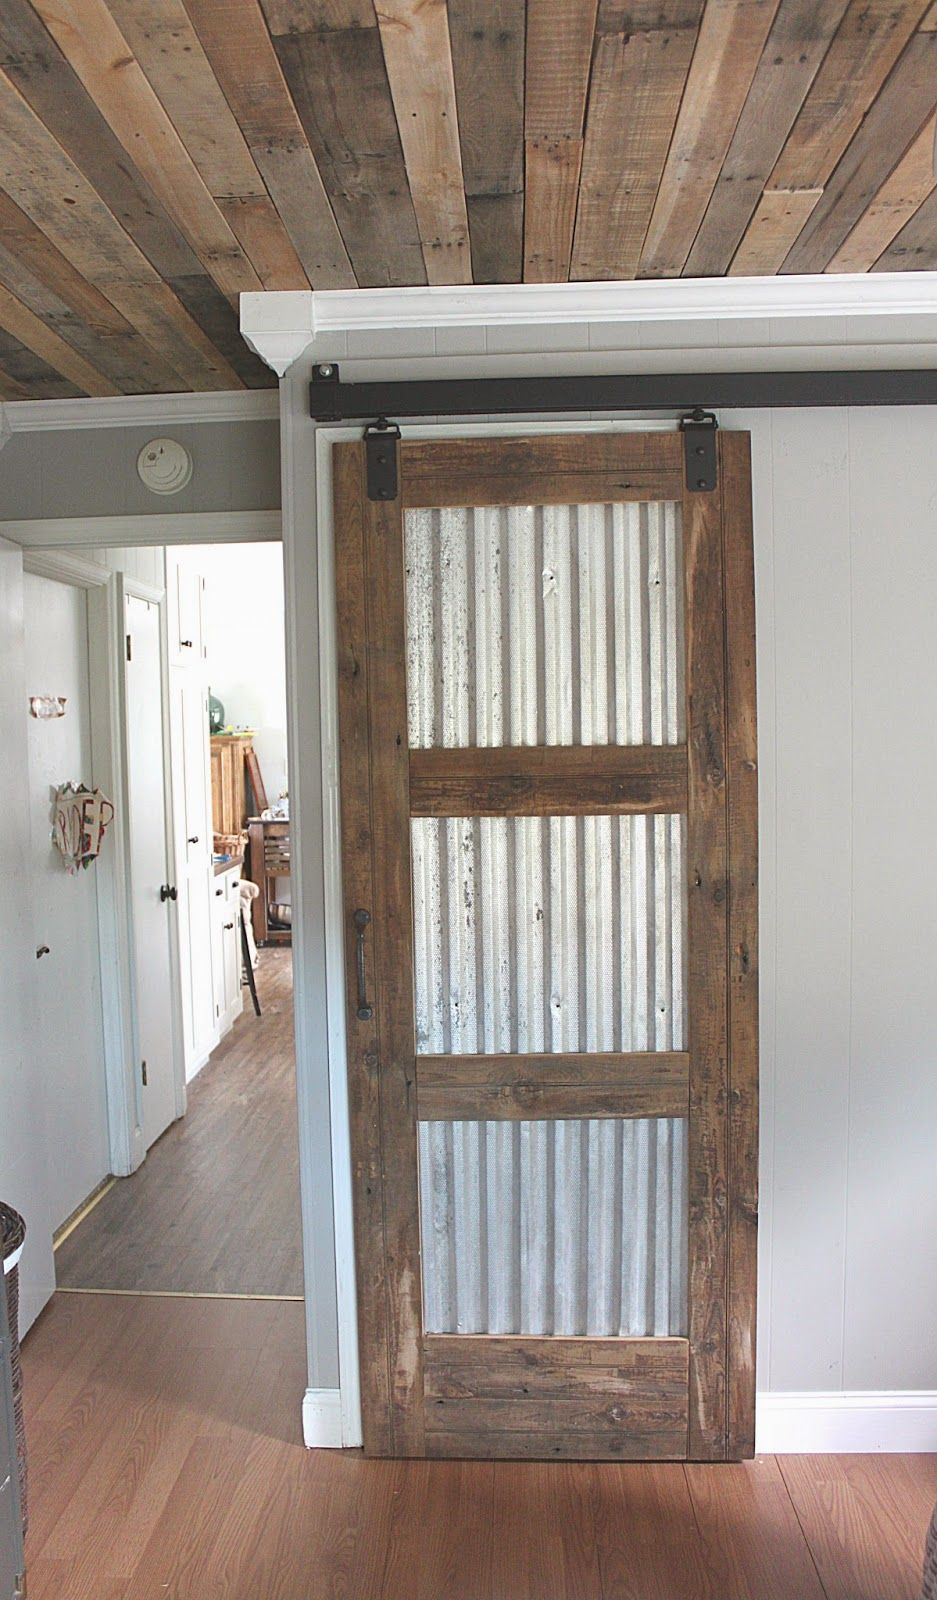 Photo of 21 DIY Barn Door Projekte für eine einfache Heim Transformation – Dekoration Haus Diy